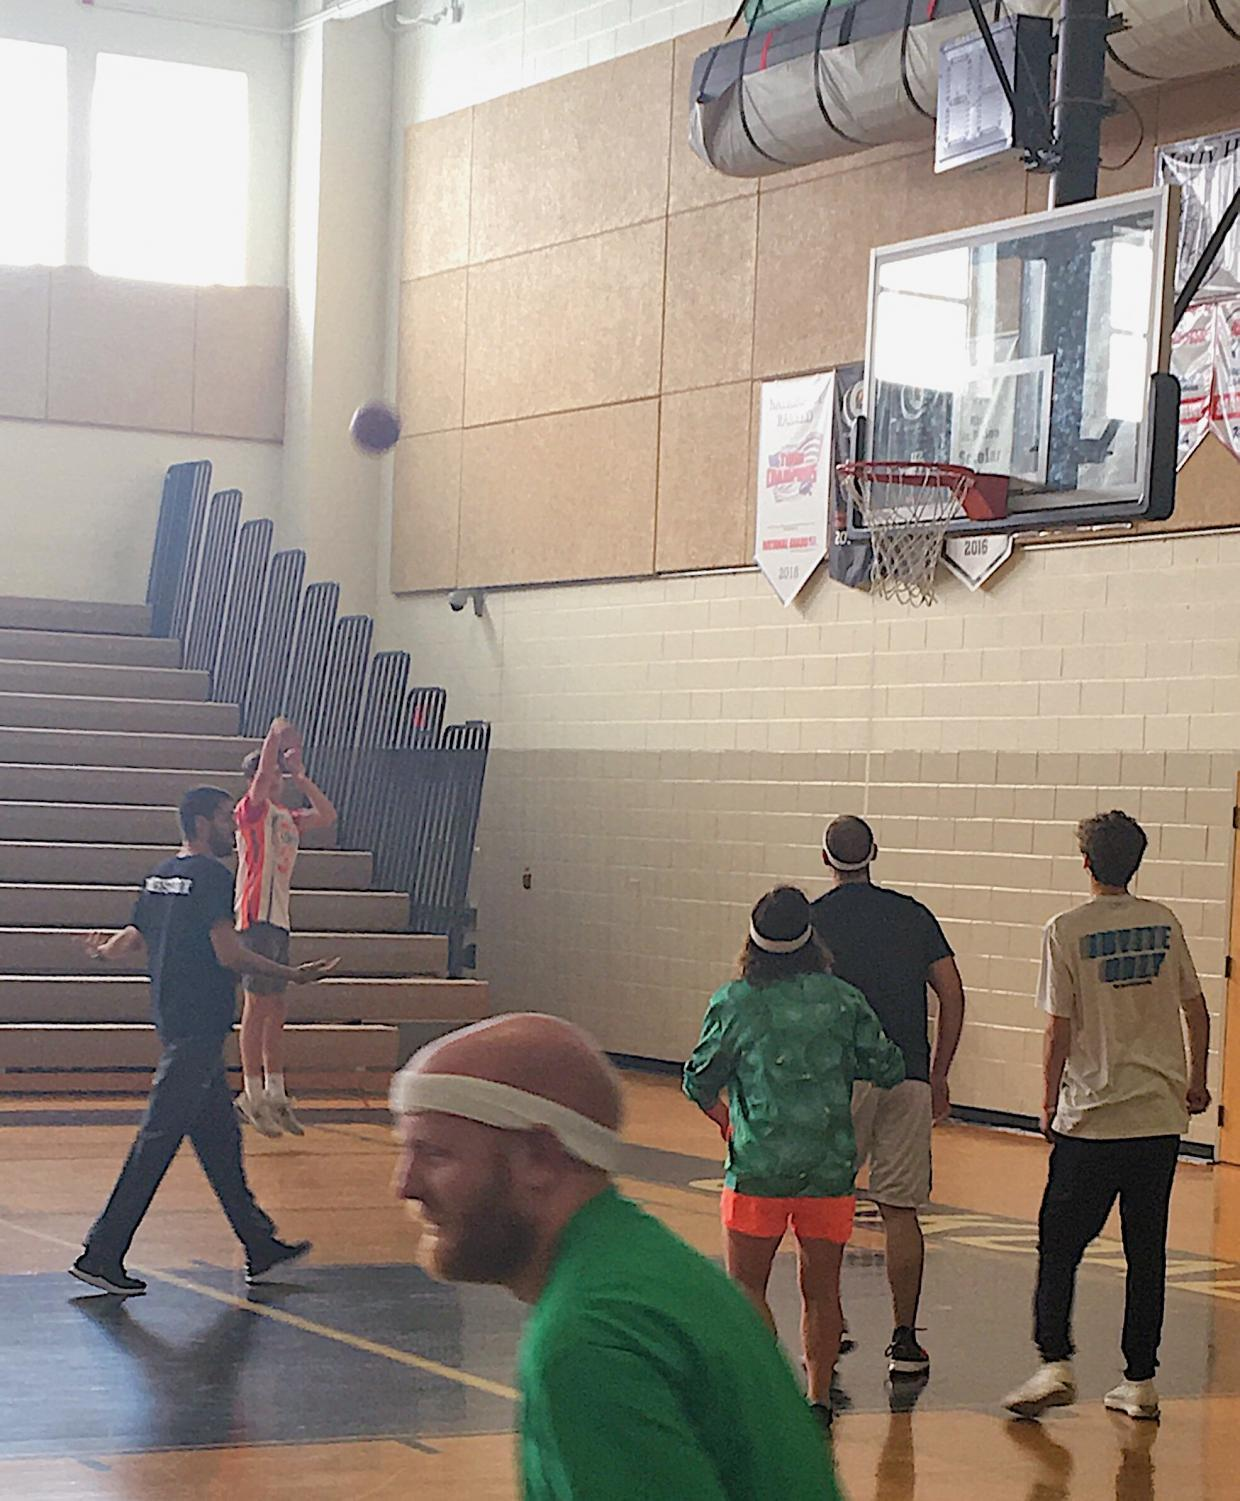 A student makes a shot during the basketball game, which raised funds for the Environmental Club's newest project.